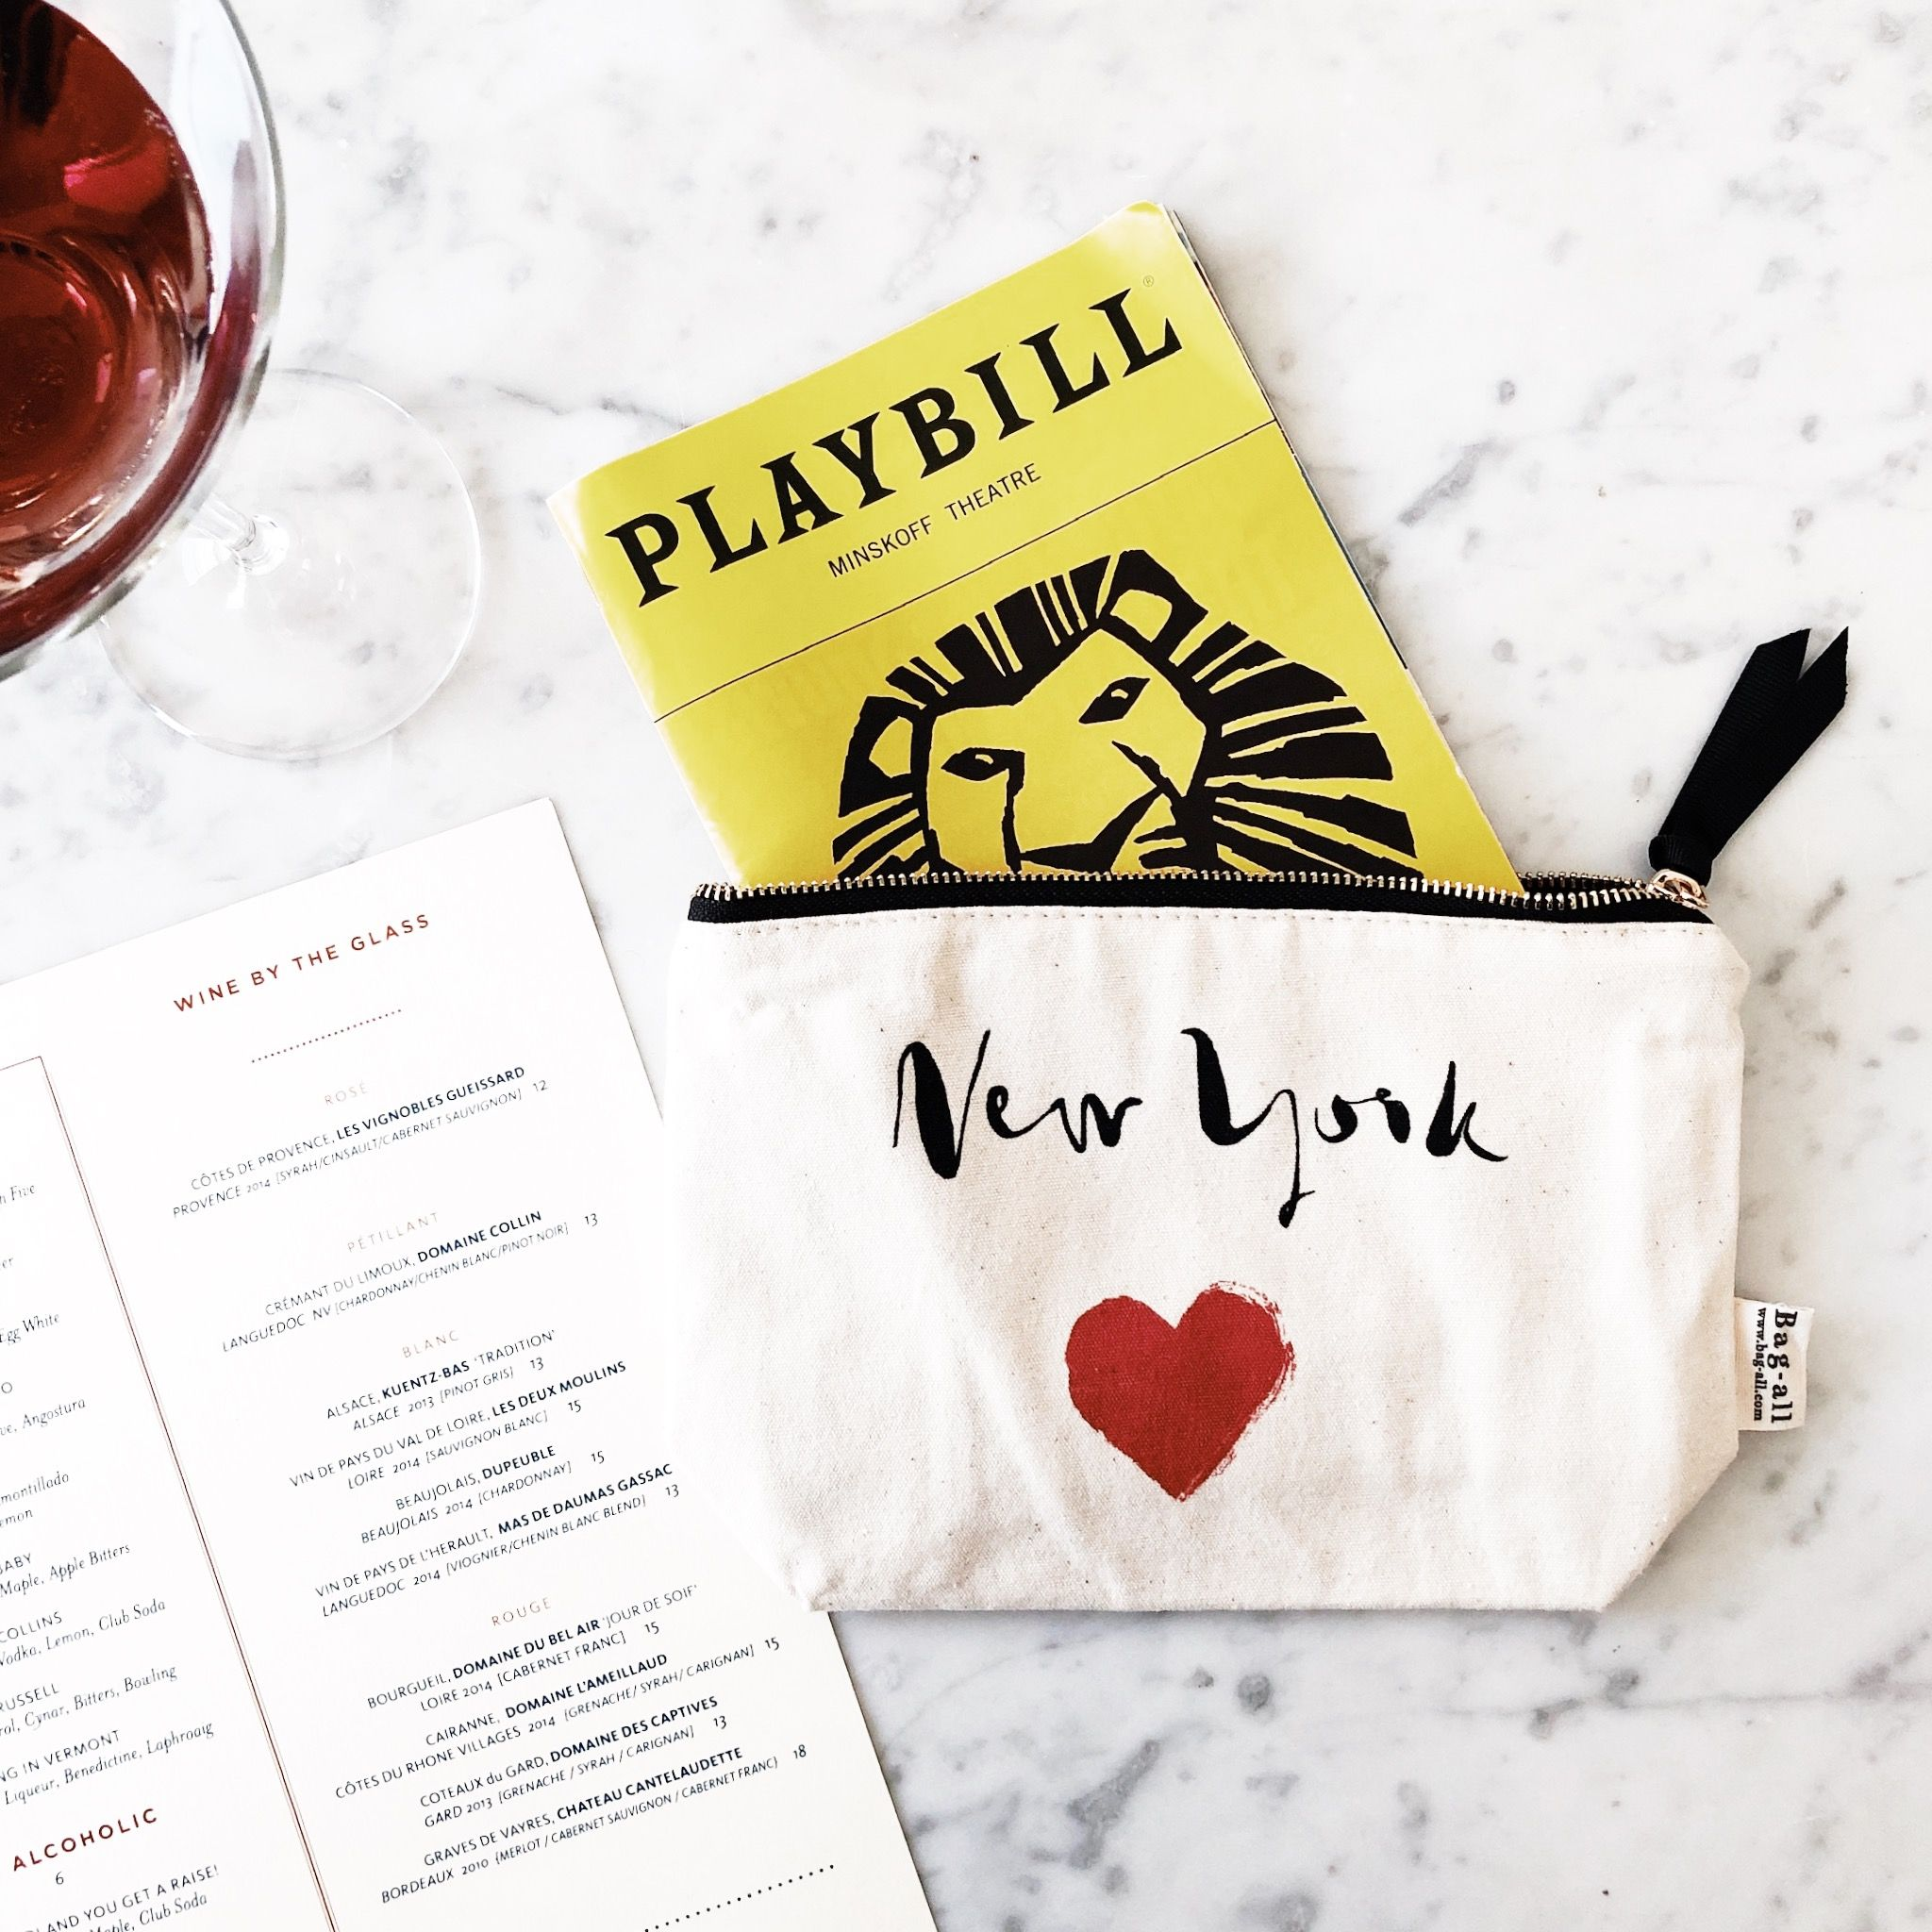 Discover Nyc With Our New York Cases New York Bag All York